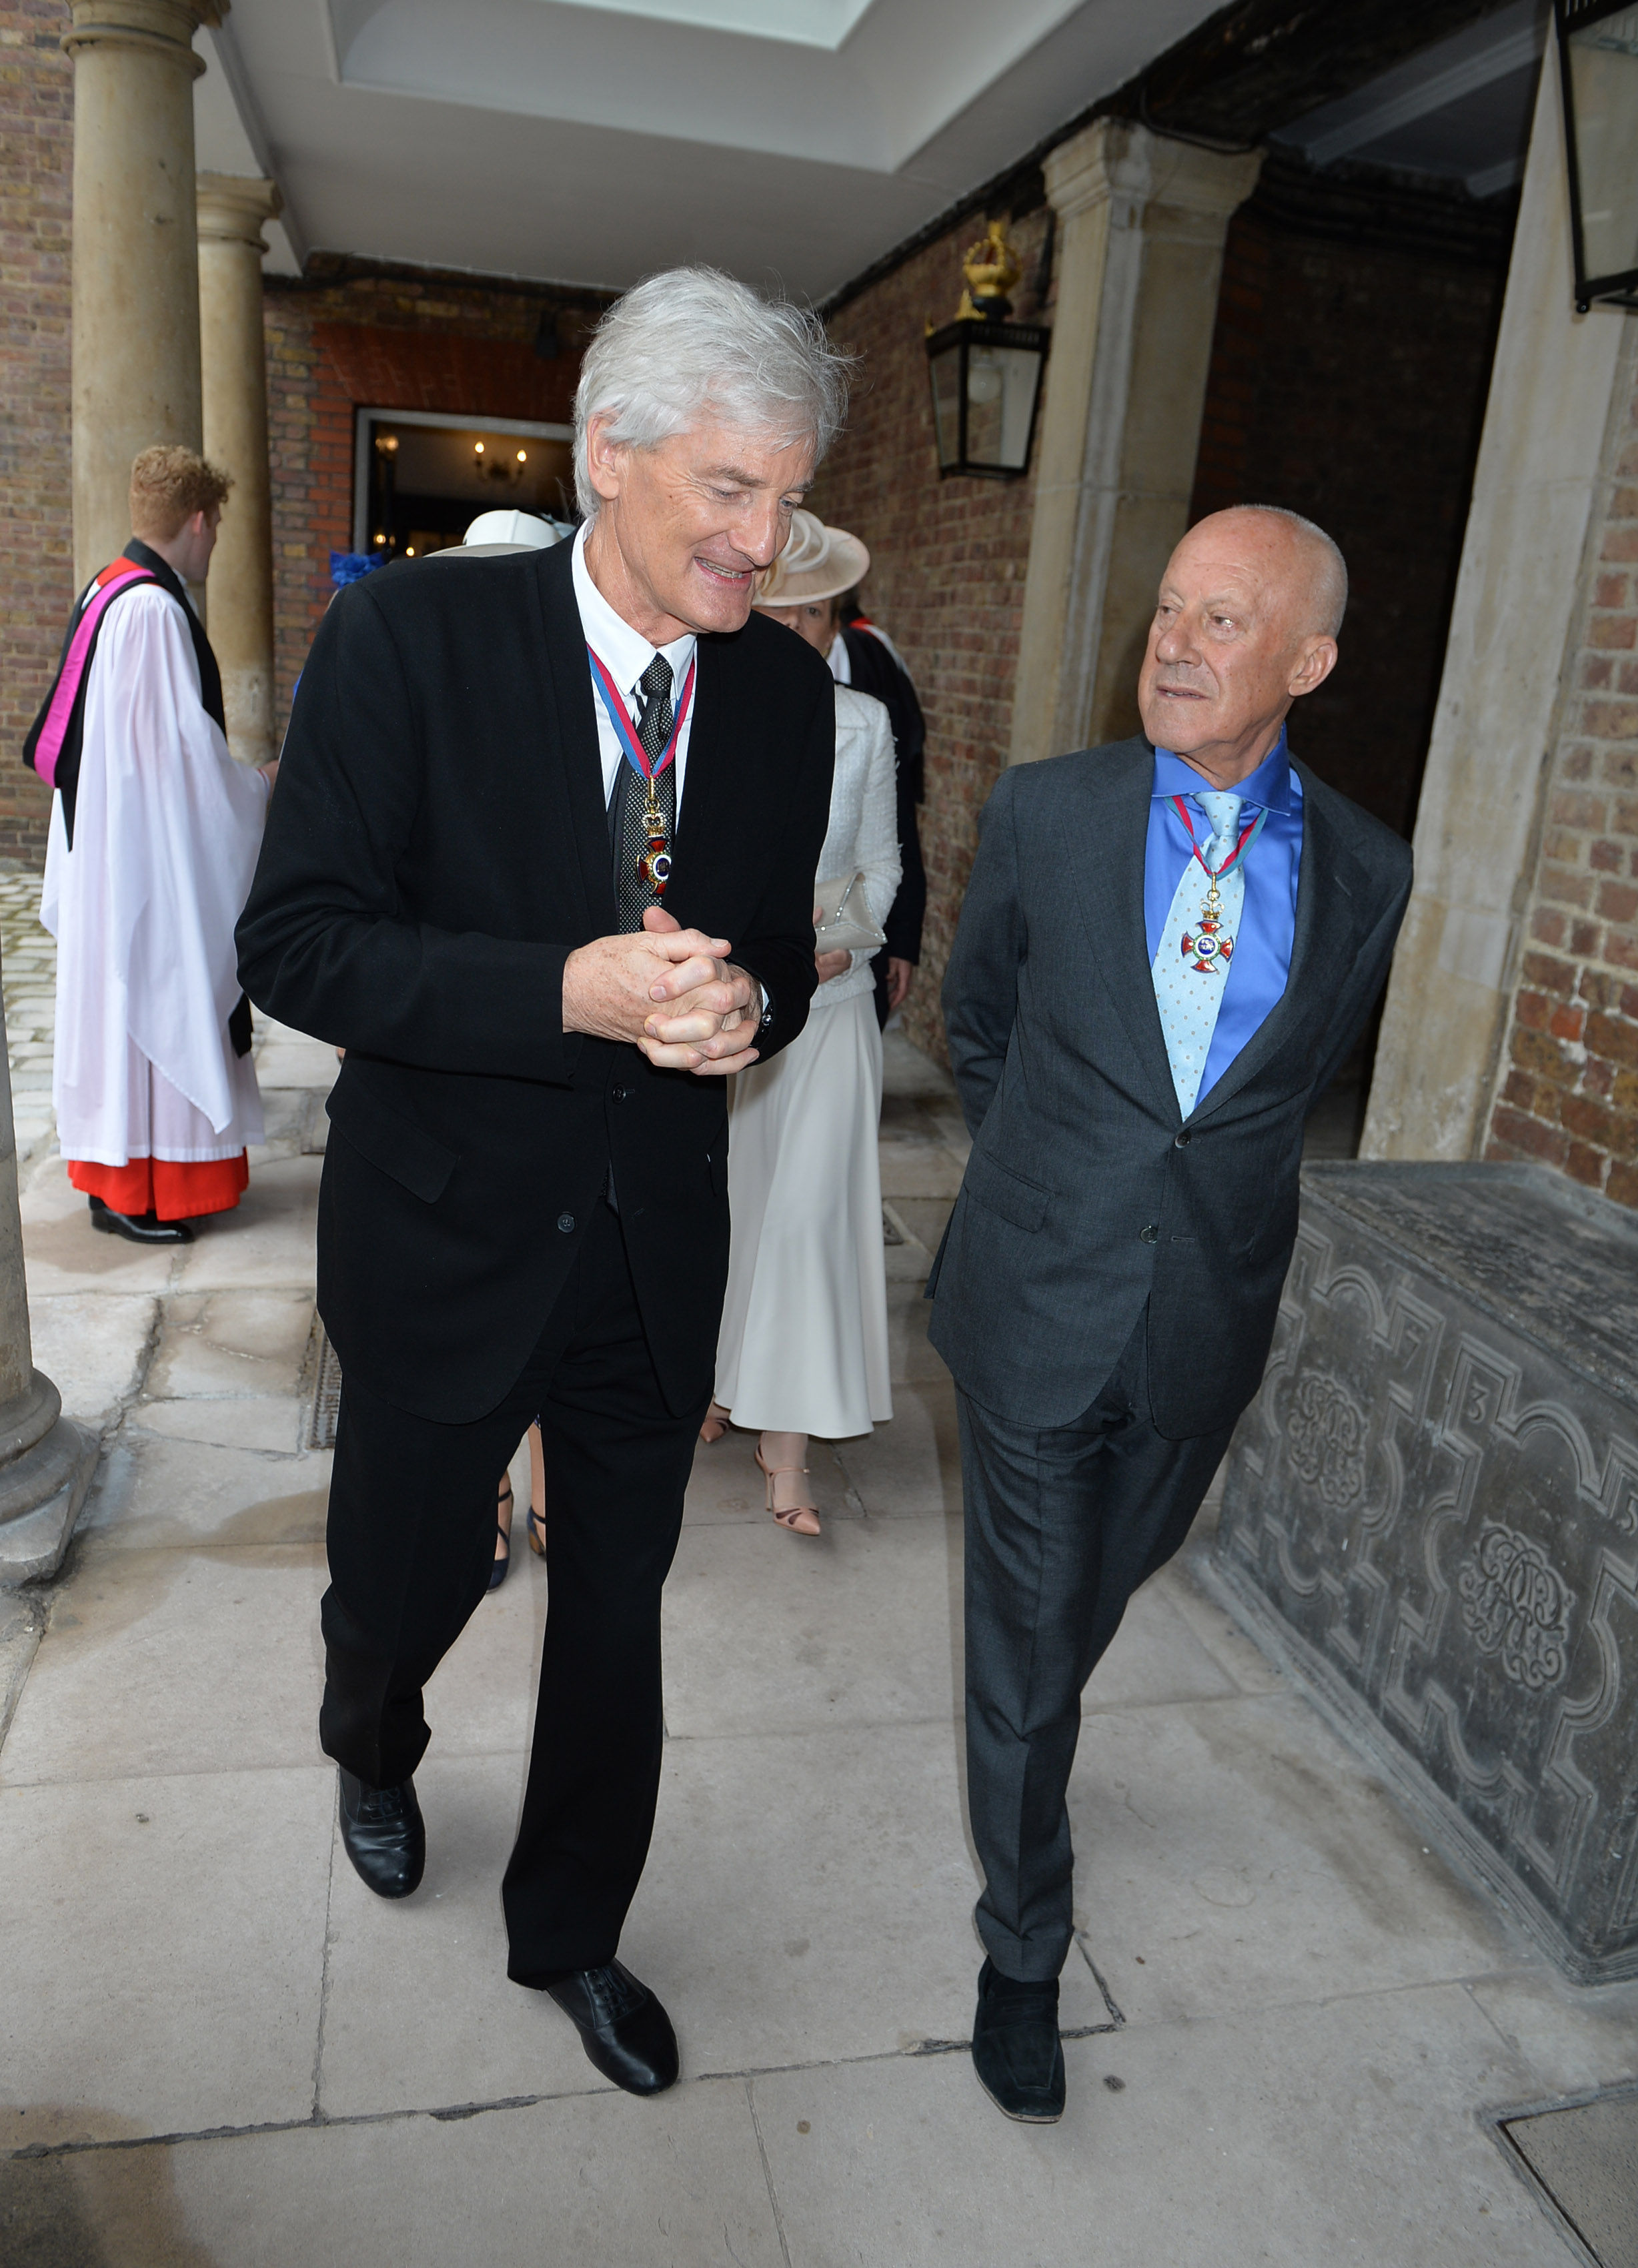 Sir James Dyson (left) and Lord Foster of Thames Bank arriving at Chapel Royal in St James's Palace, London, for an Order of Merit service.